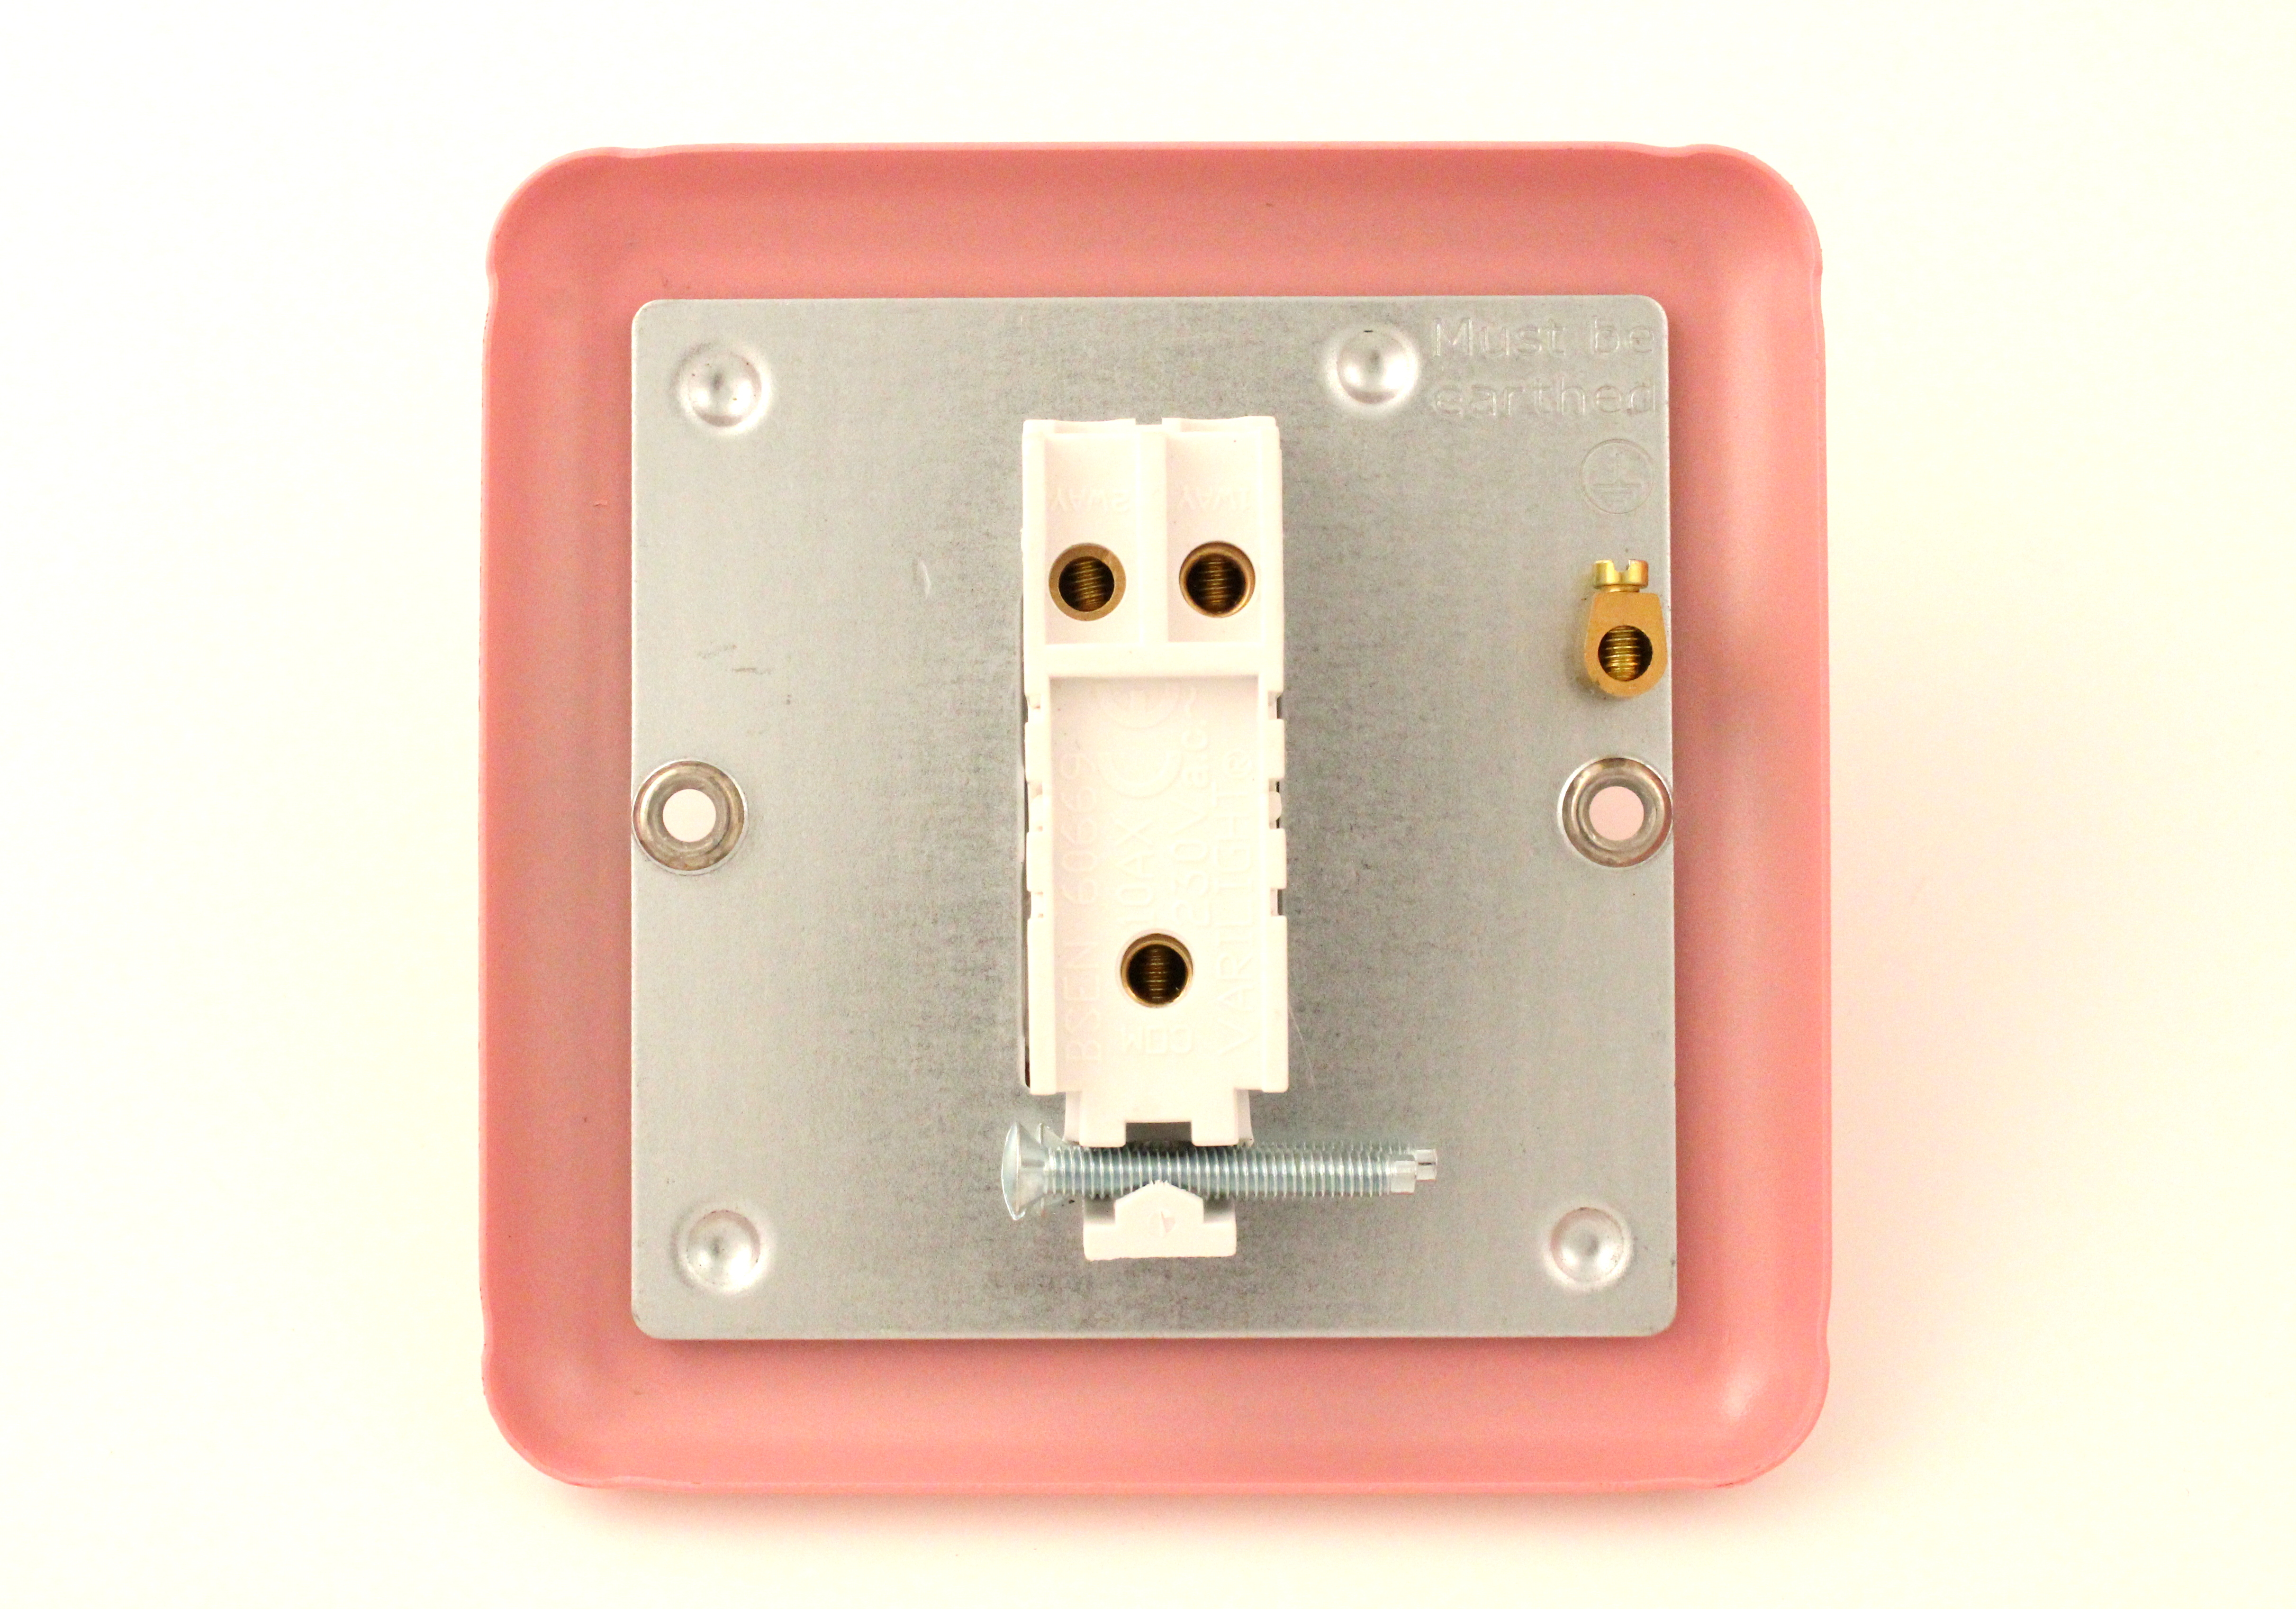 light switch | The Candy Queen Designs Blog